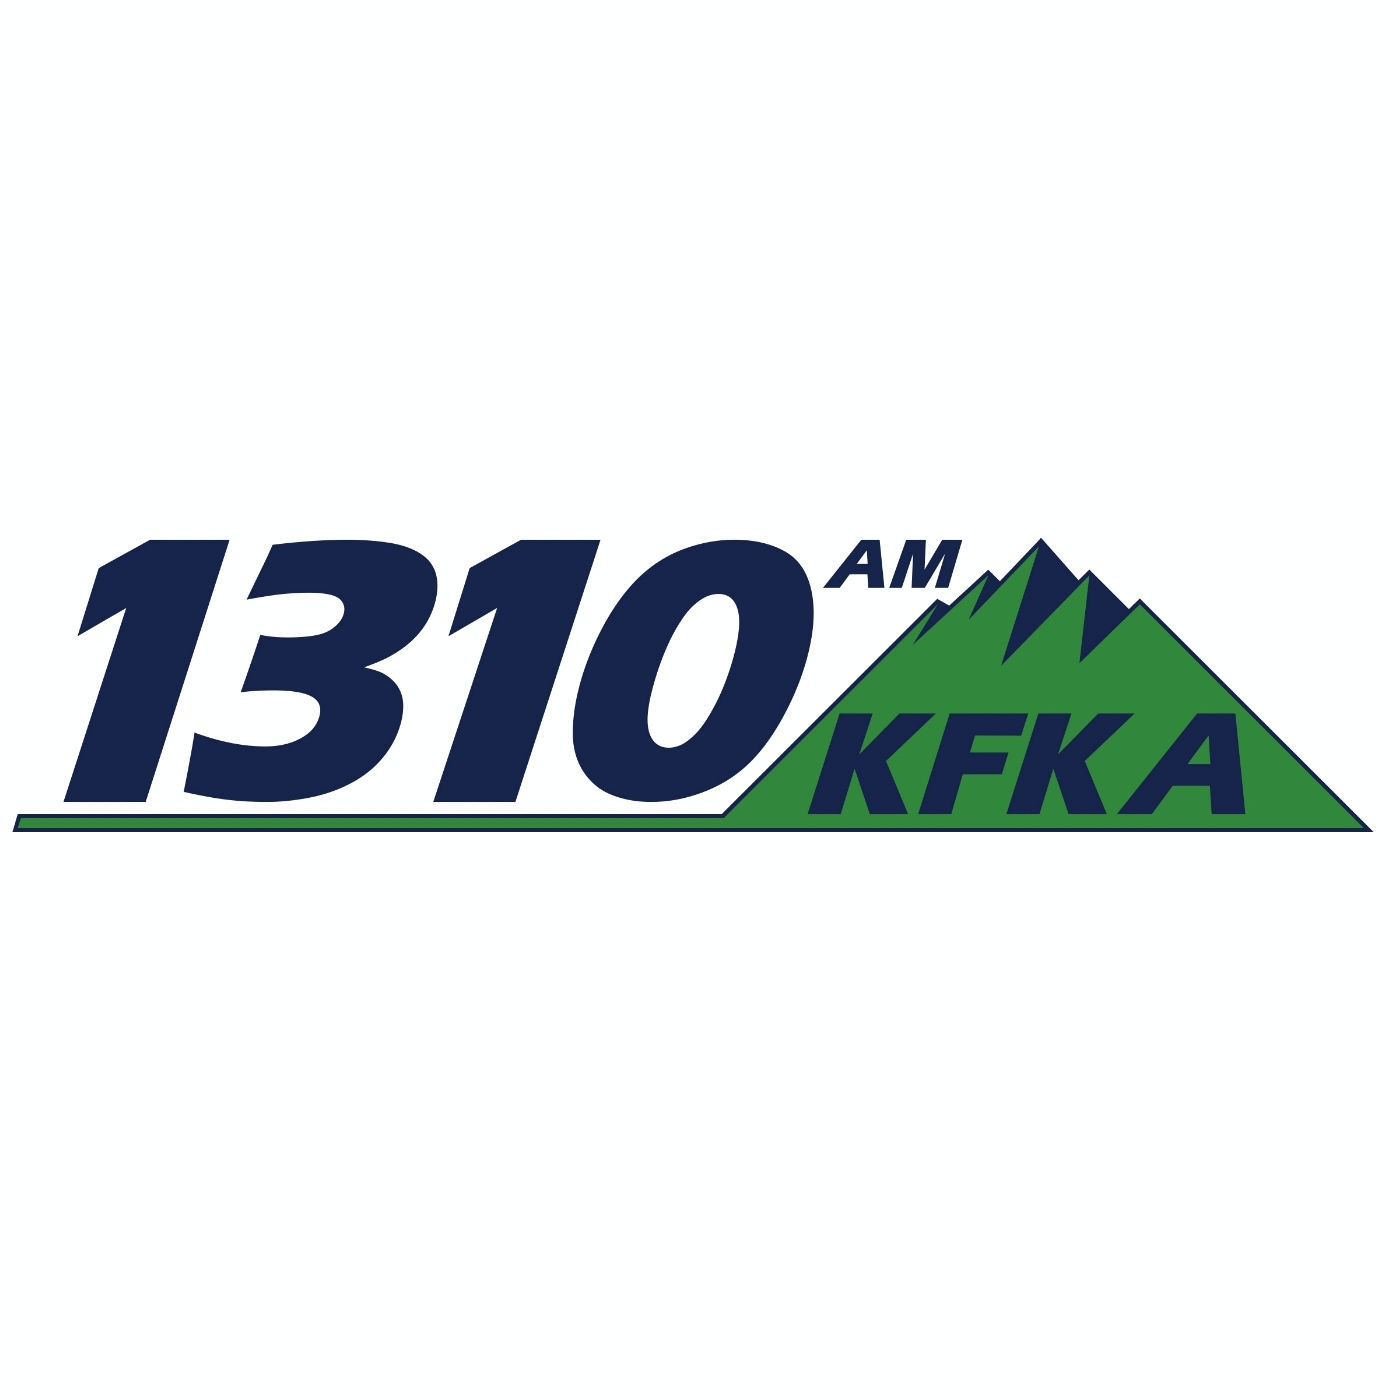 """Fresh update on """"communist party"""" discussed on Mornings With Gail - 1310 KFKA"""